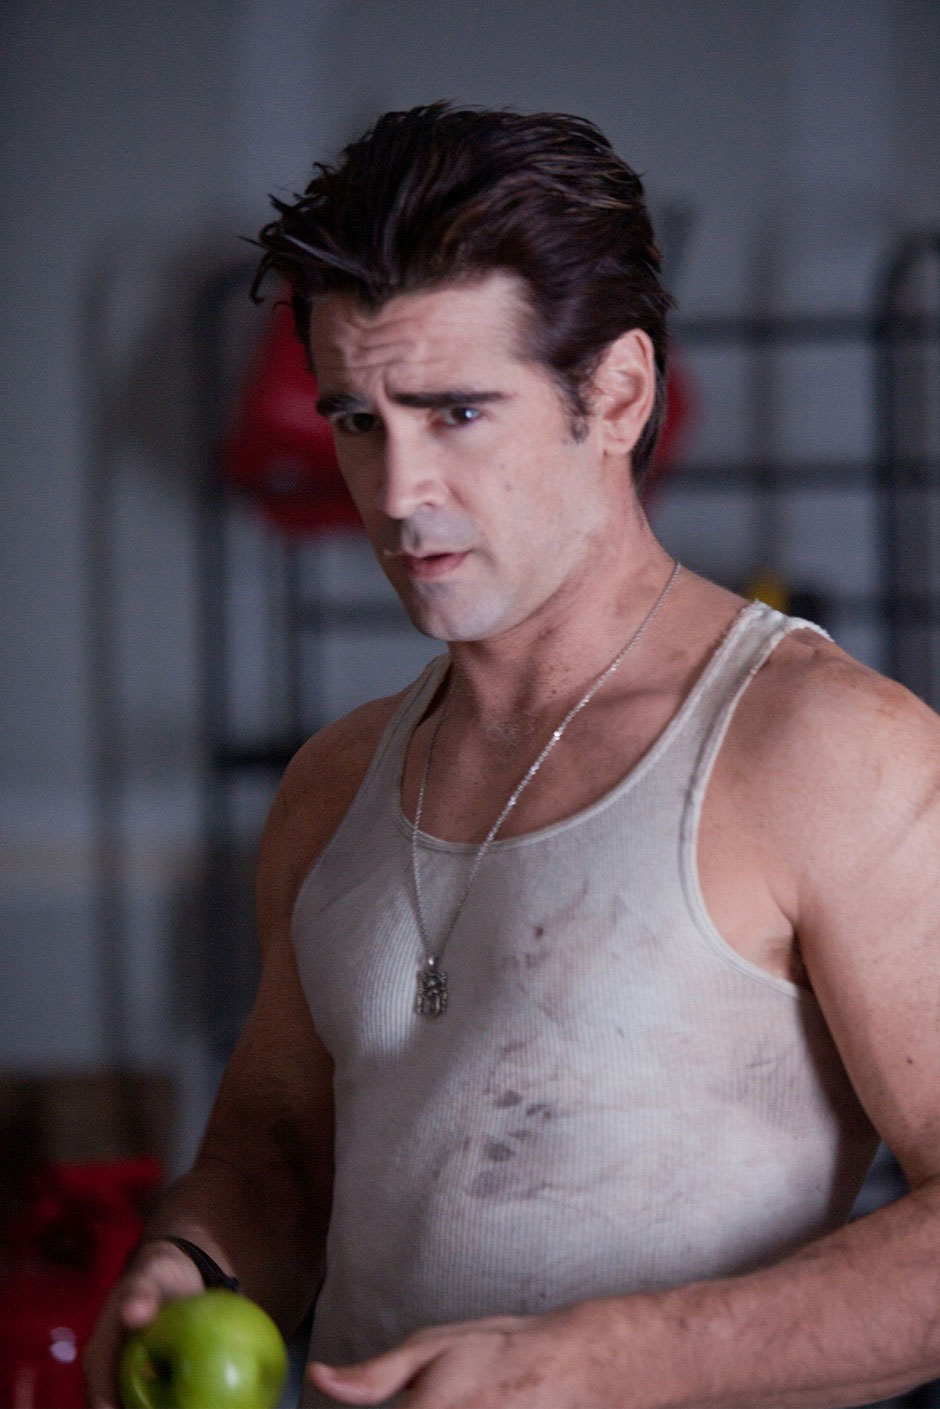 Fright Night, Or An Evening With Colin Farrell - By Eileen ...